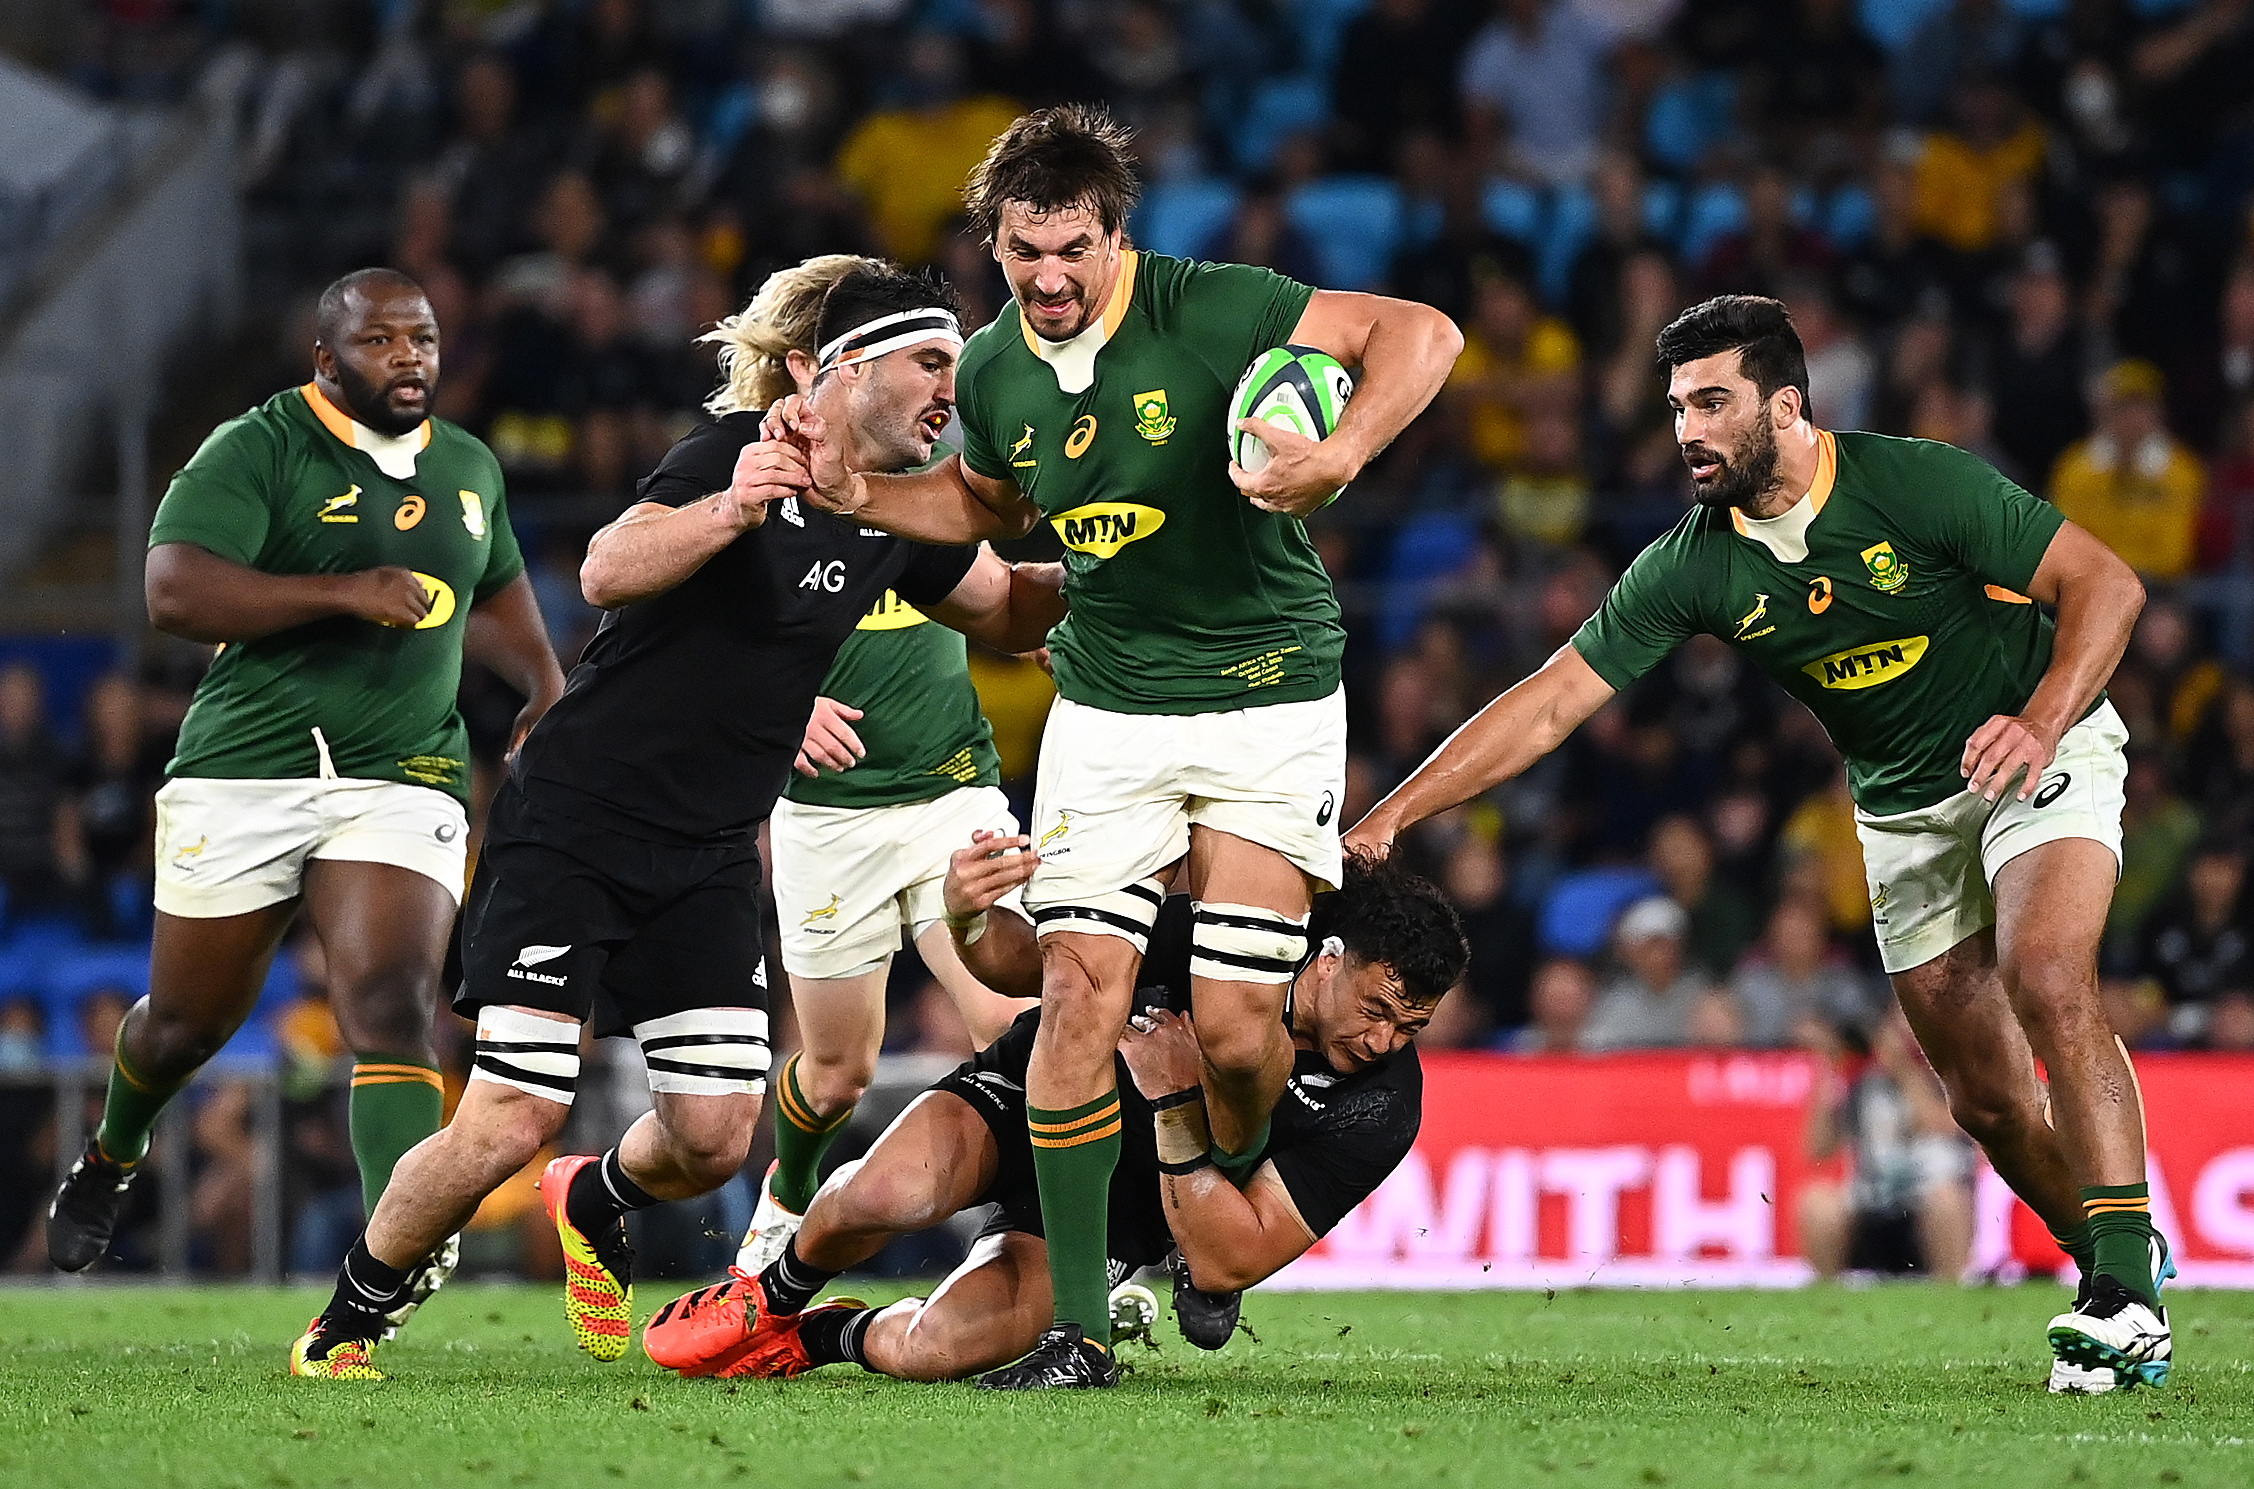 Jacques Nienaber: For the Springbboks, consistency is key - SARugbymag